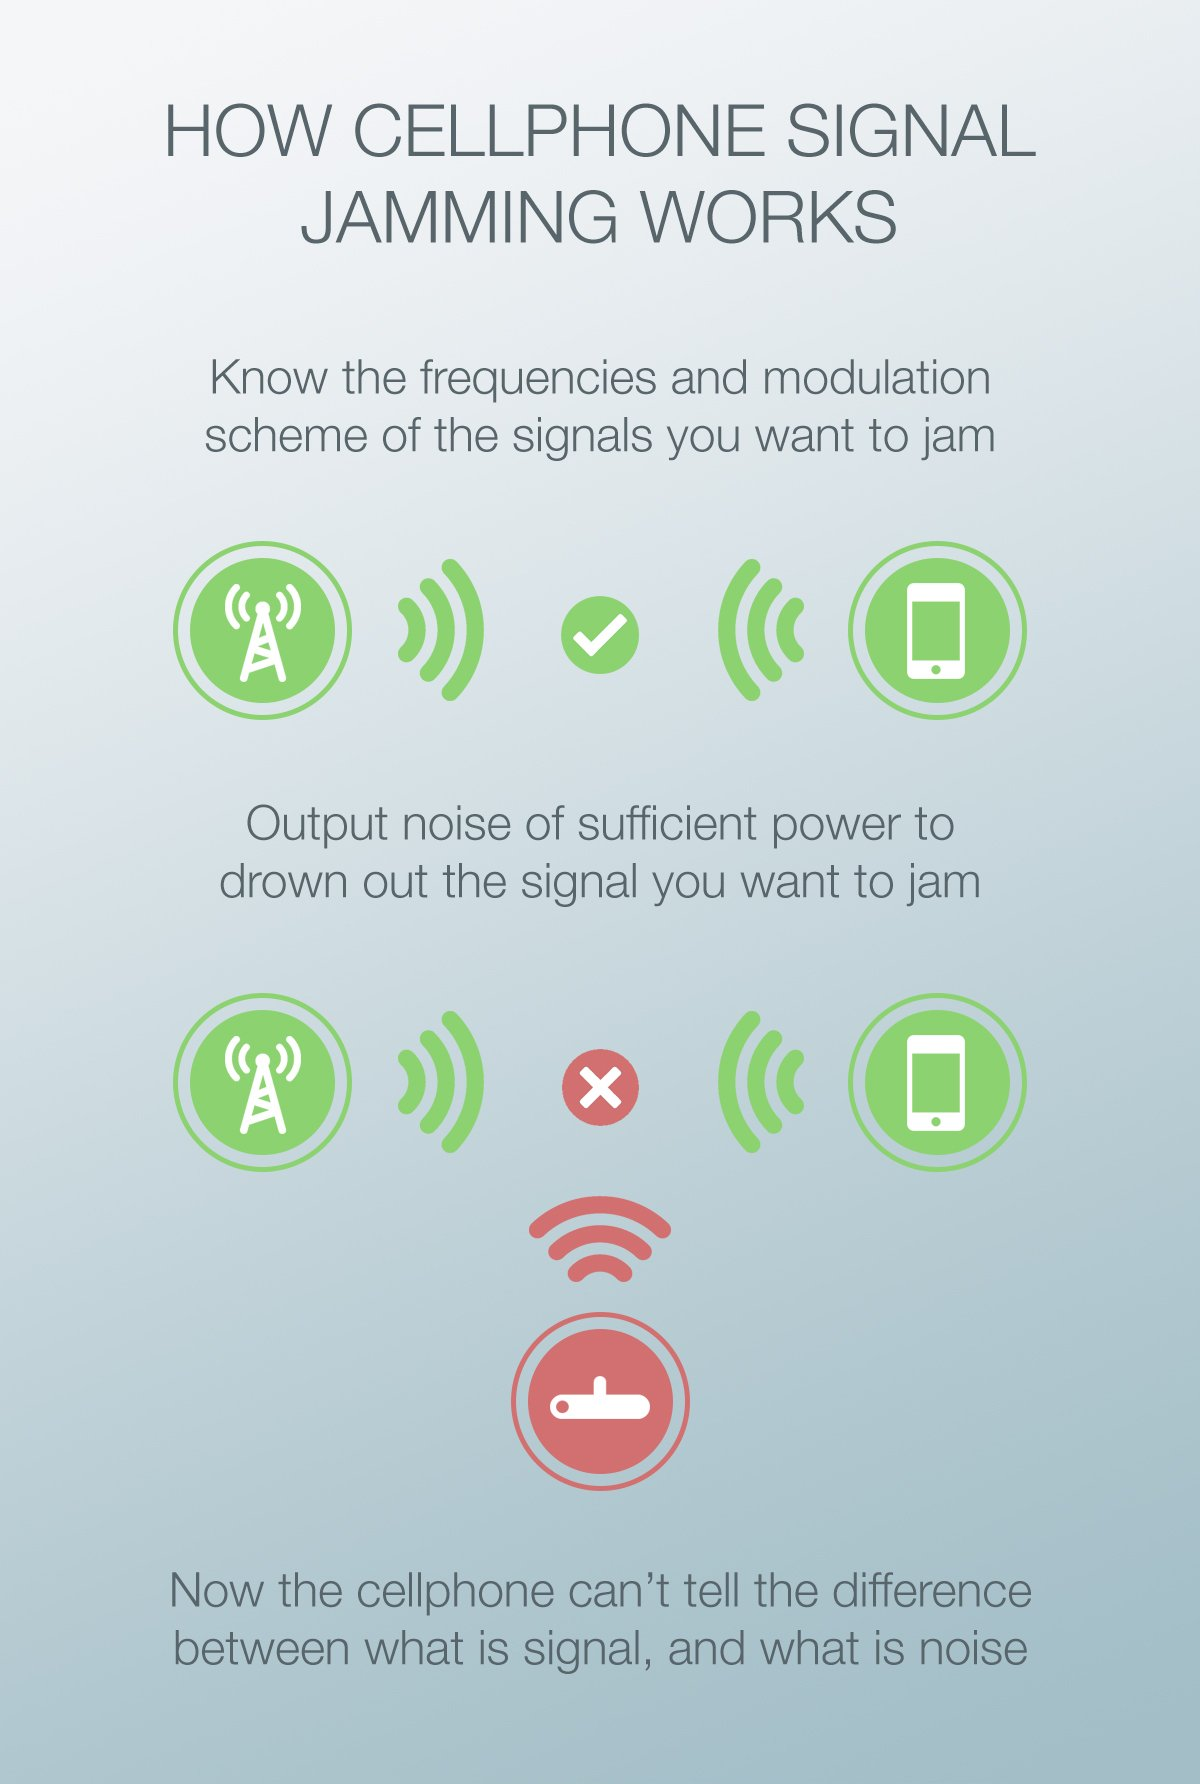 Blocking mobile phone signals - jamming mobile phones no contract